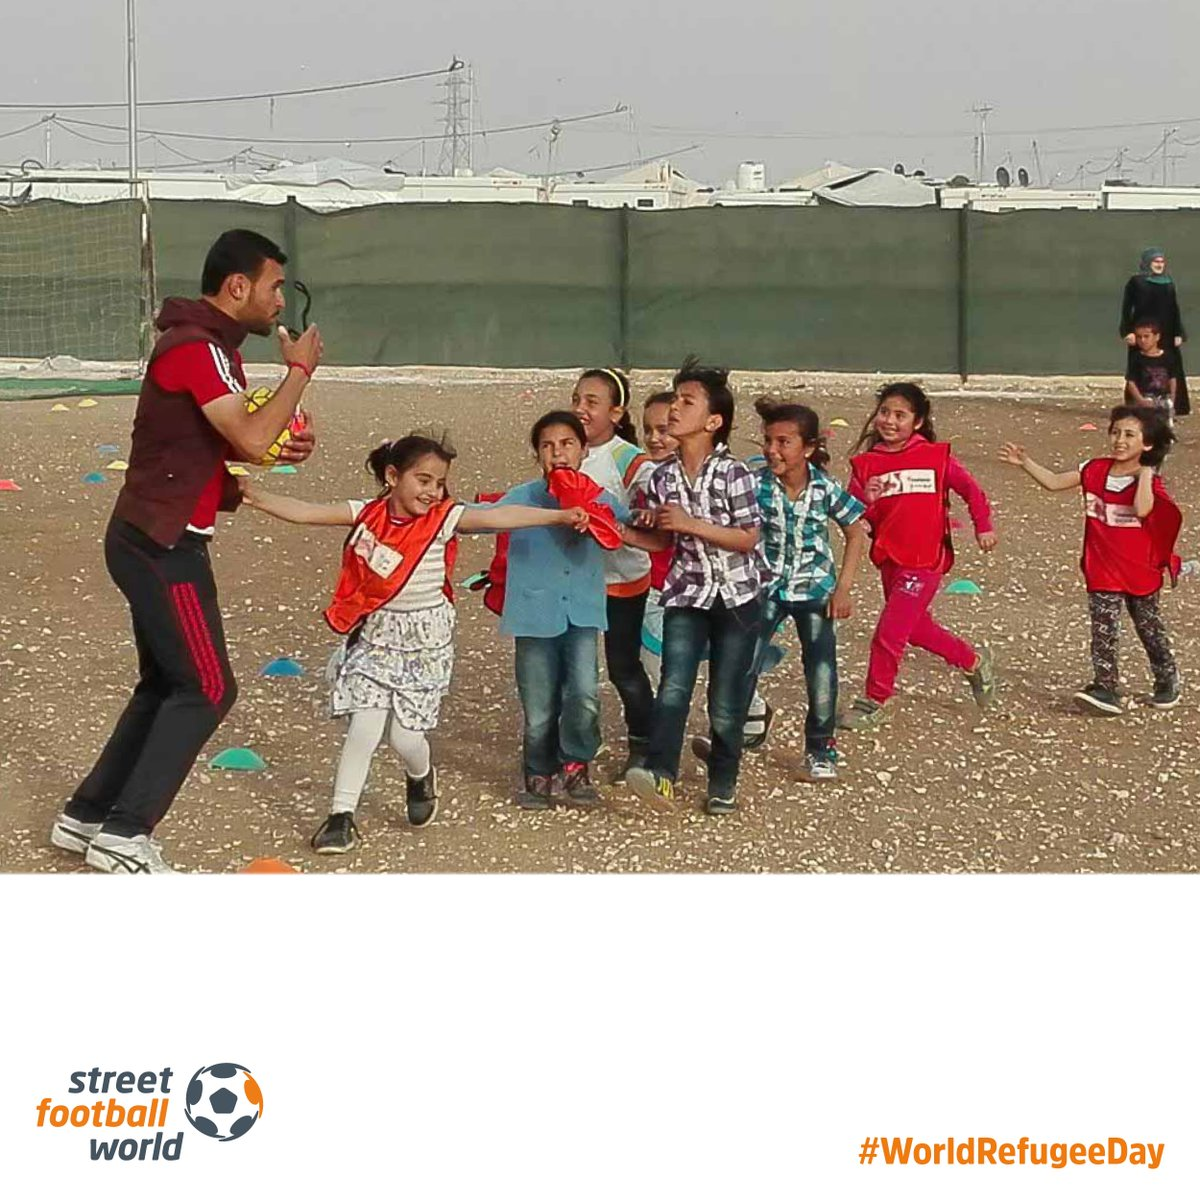 test Twitter Media - This #WorldRefugeeDay we would like to highlight a programme initiated together with @TheAFDP and #CrossCultures project, funded by @BMZ_Bund and @UefaFoundation helping to support refugees and foster social cohesion in Jordan. Read here: https://t.co/p0TyZONQqw #football4good https://t.co/TW5a6tVEpa